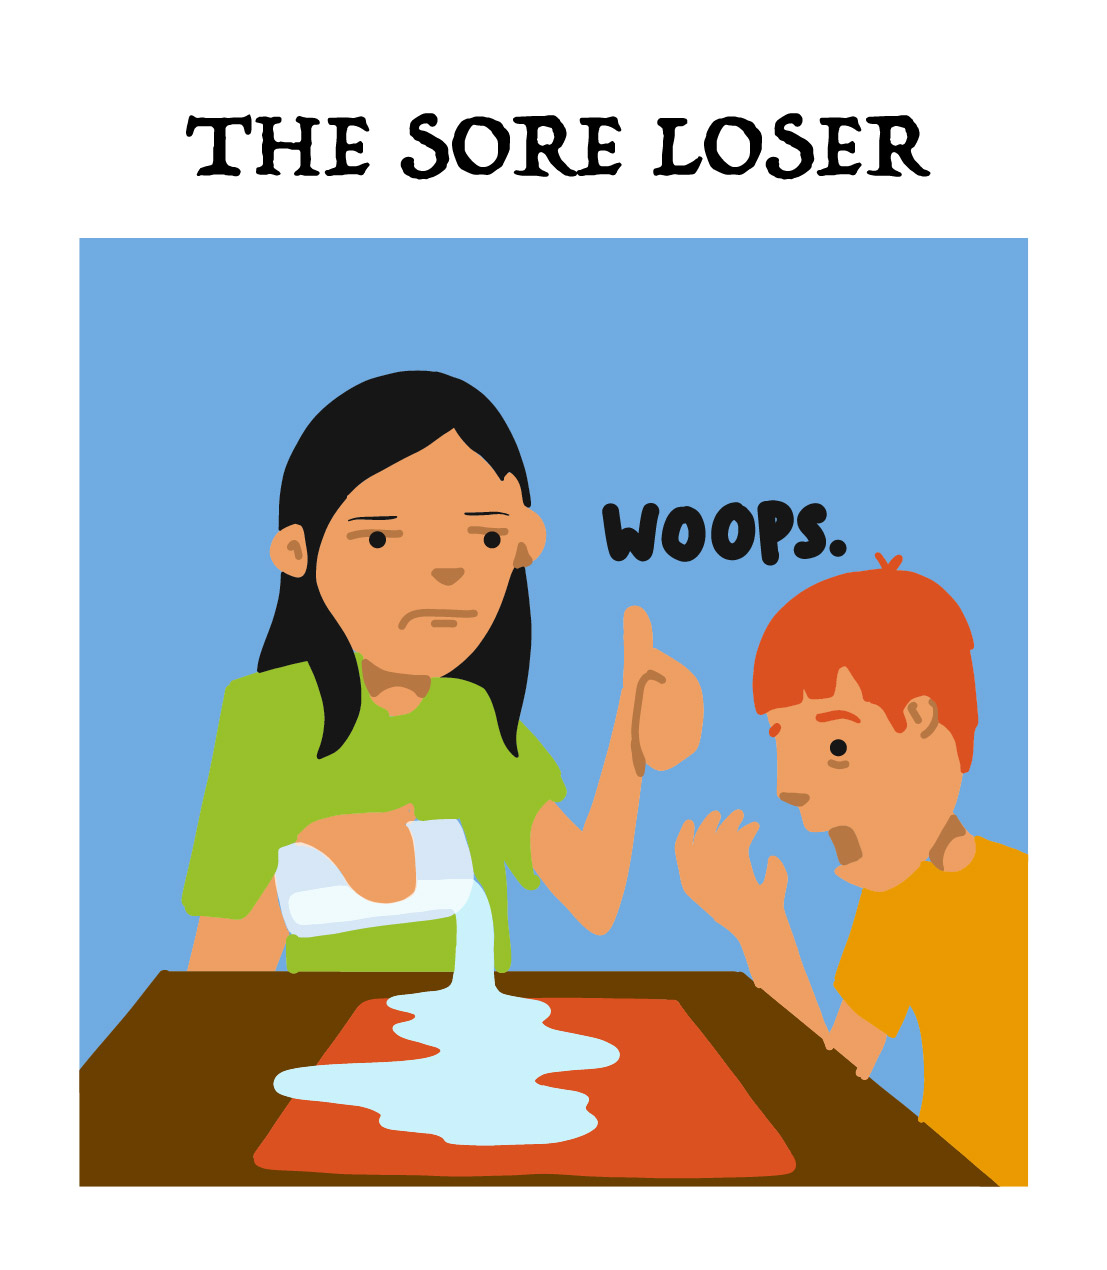 the sore loser, type 6 of the board game players